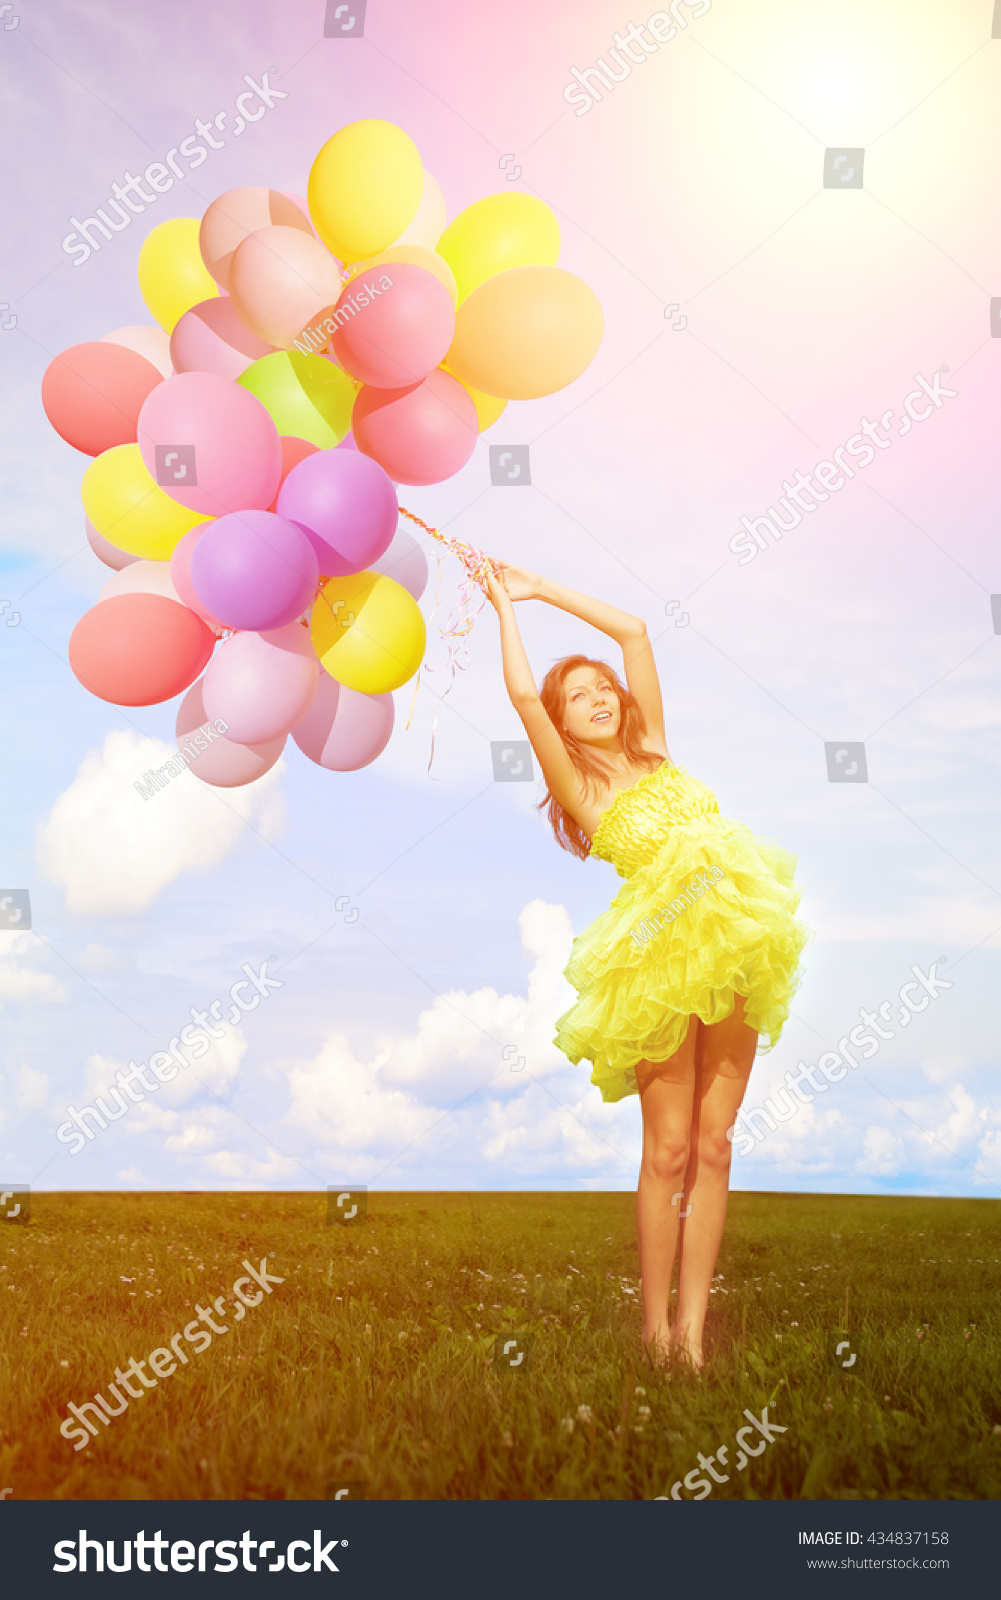 happy birthday woman against the sky with rainbow colored air balloons in hands sunny and positive energy of nature young beautiful girl on the grass in